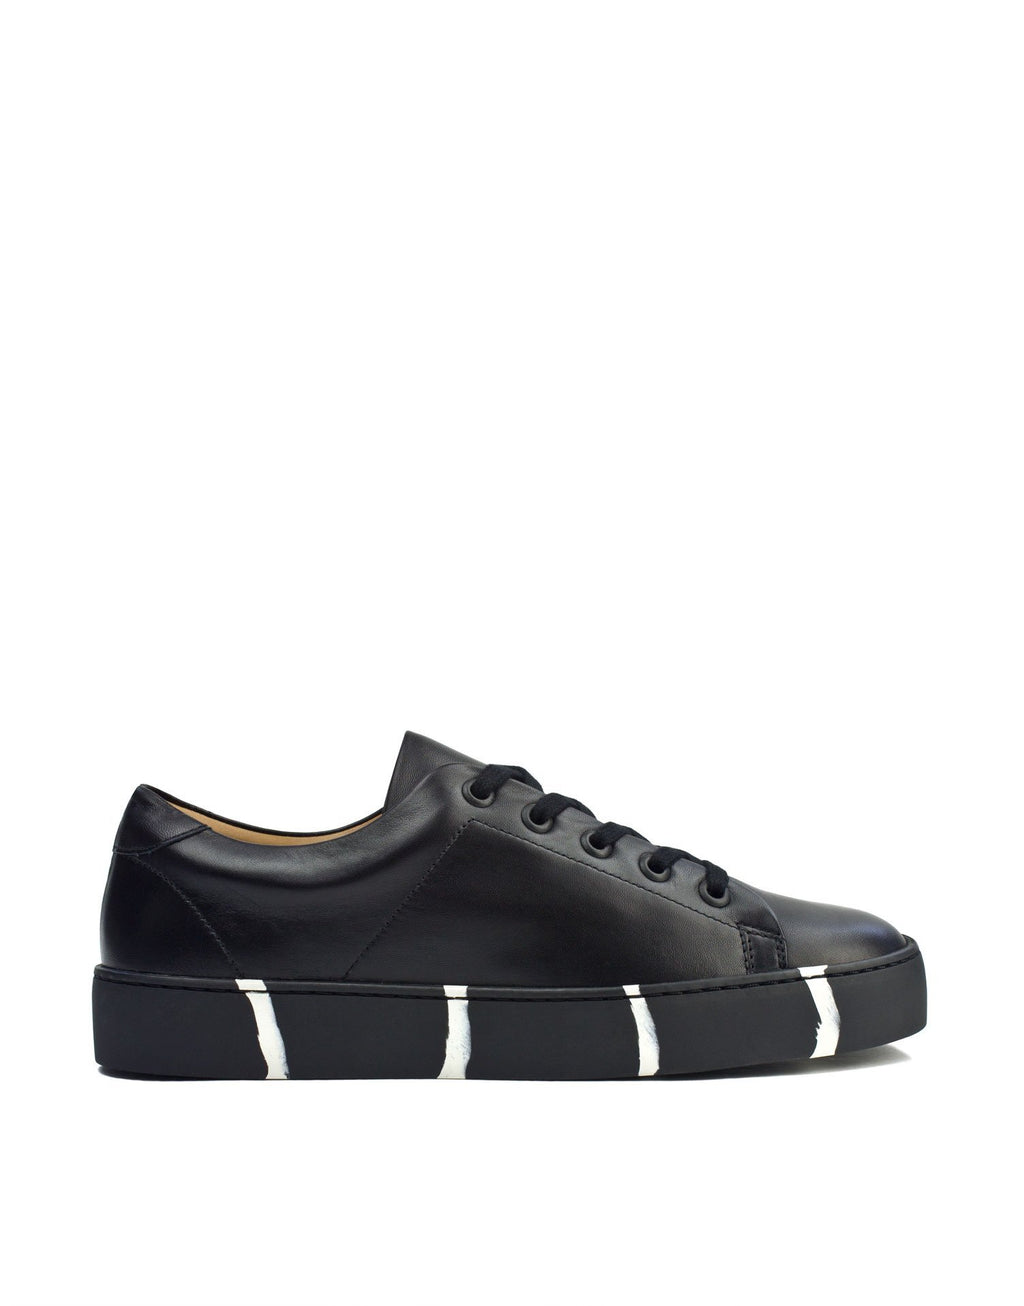 Classic minimal black leather sneaker with recycled sole and signature Georgina Goodman stripes